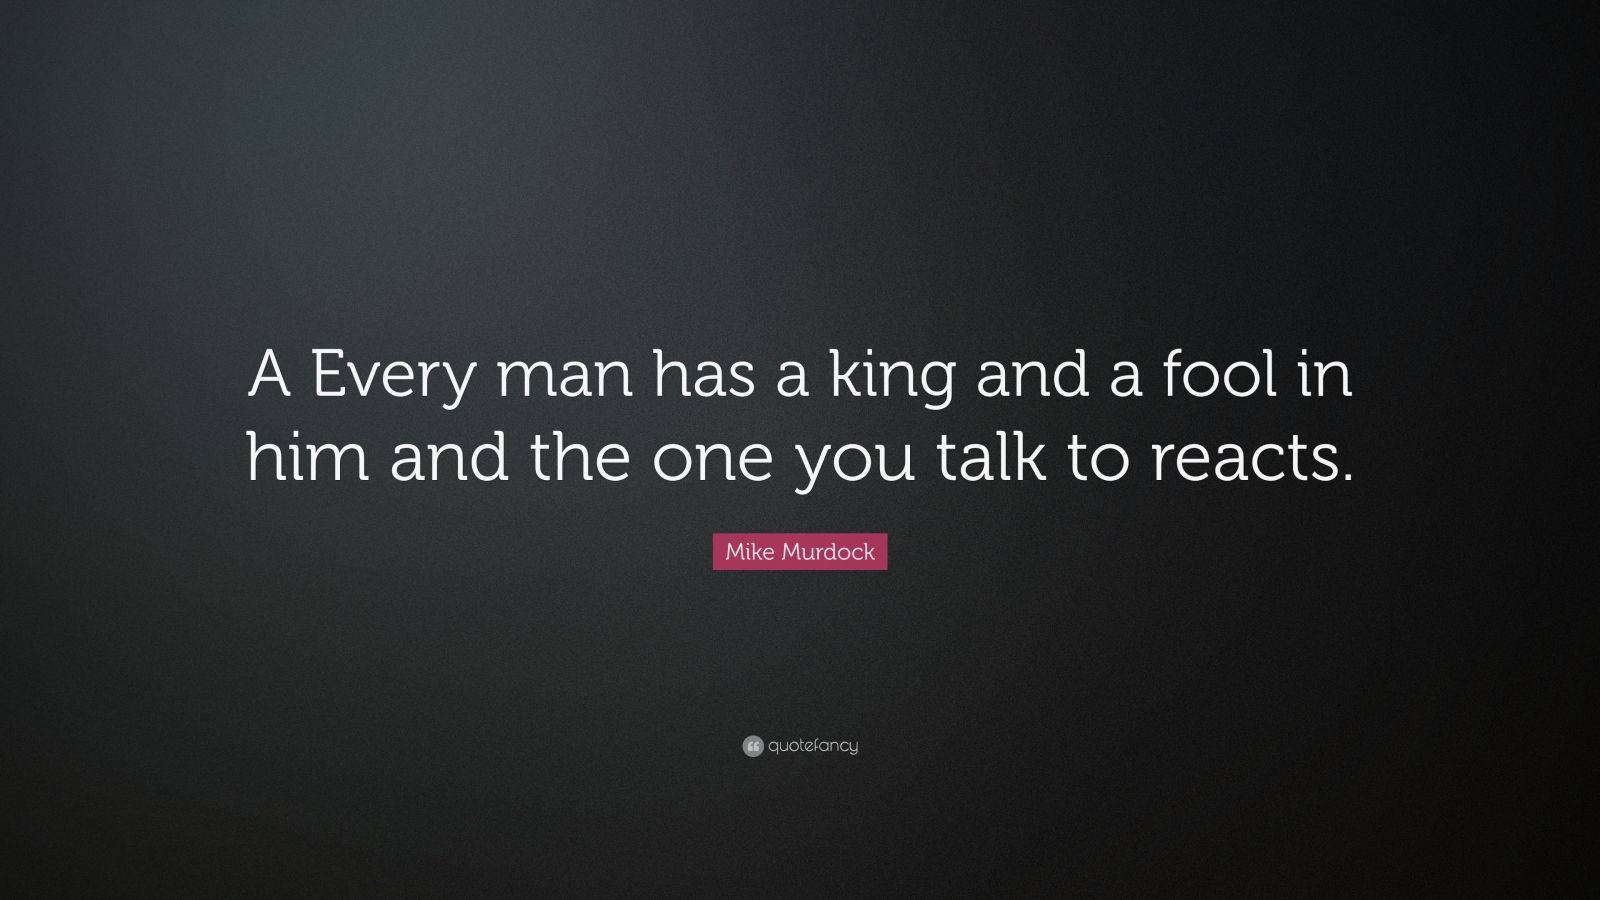 """Mike Murdock Quote: """"A Every man has a king and a fool in him and the one you talk to reacts."""""""